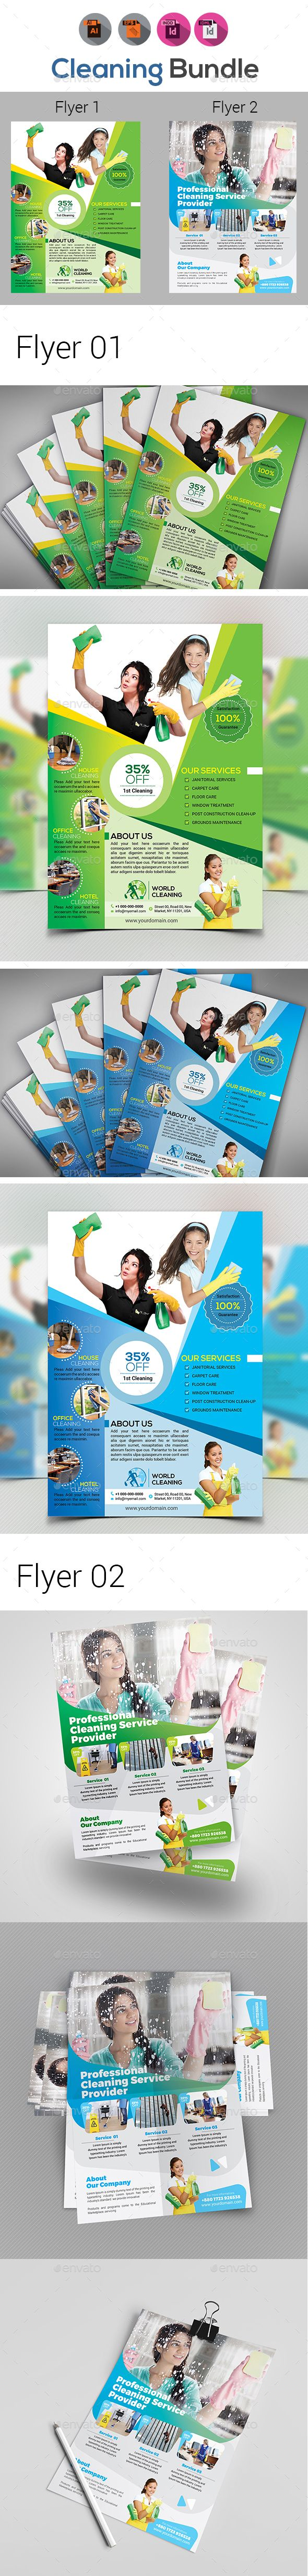 31 best cleaning service flyer images on pinterest advertising